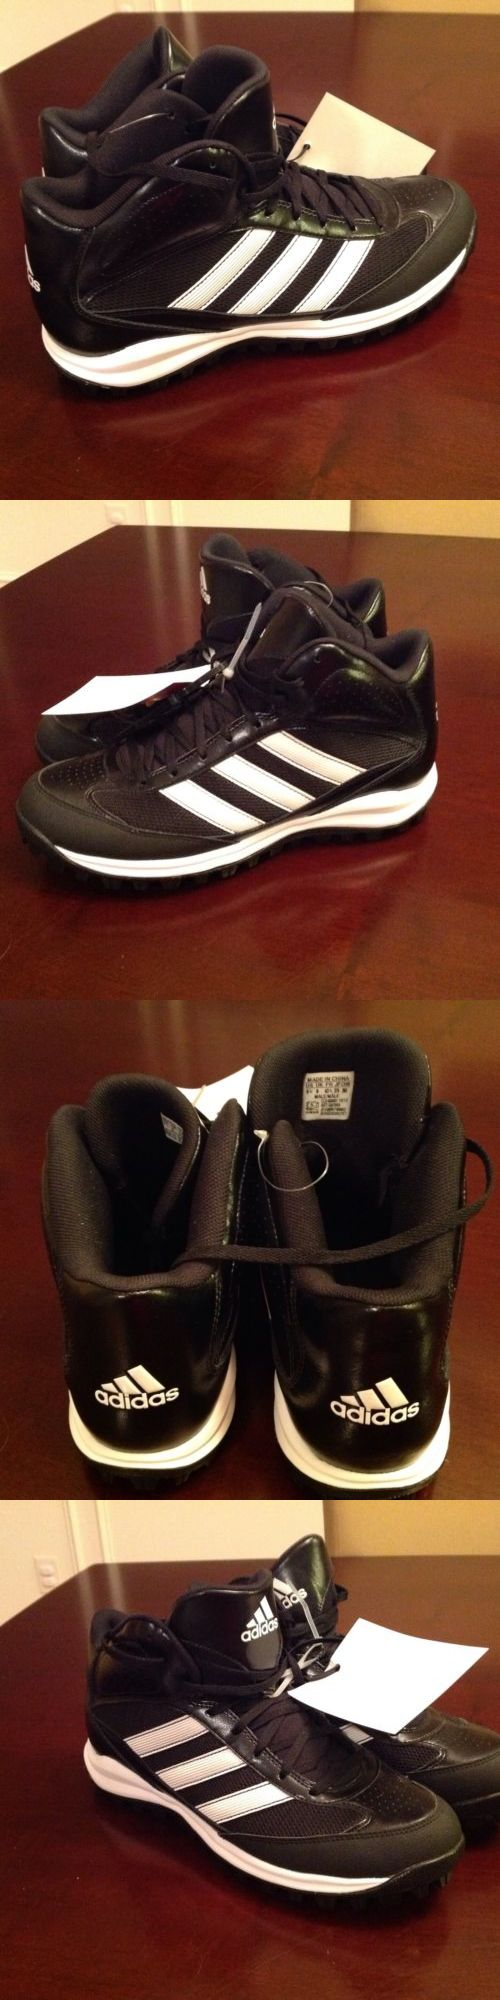 Mens 159059: Adidas Turf Hog Lx Mid High Turf Cleats Football Baseball New Size 9.5 BUY IT NOW ONLY: $37.0